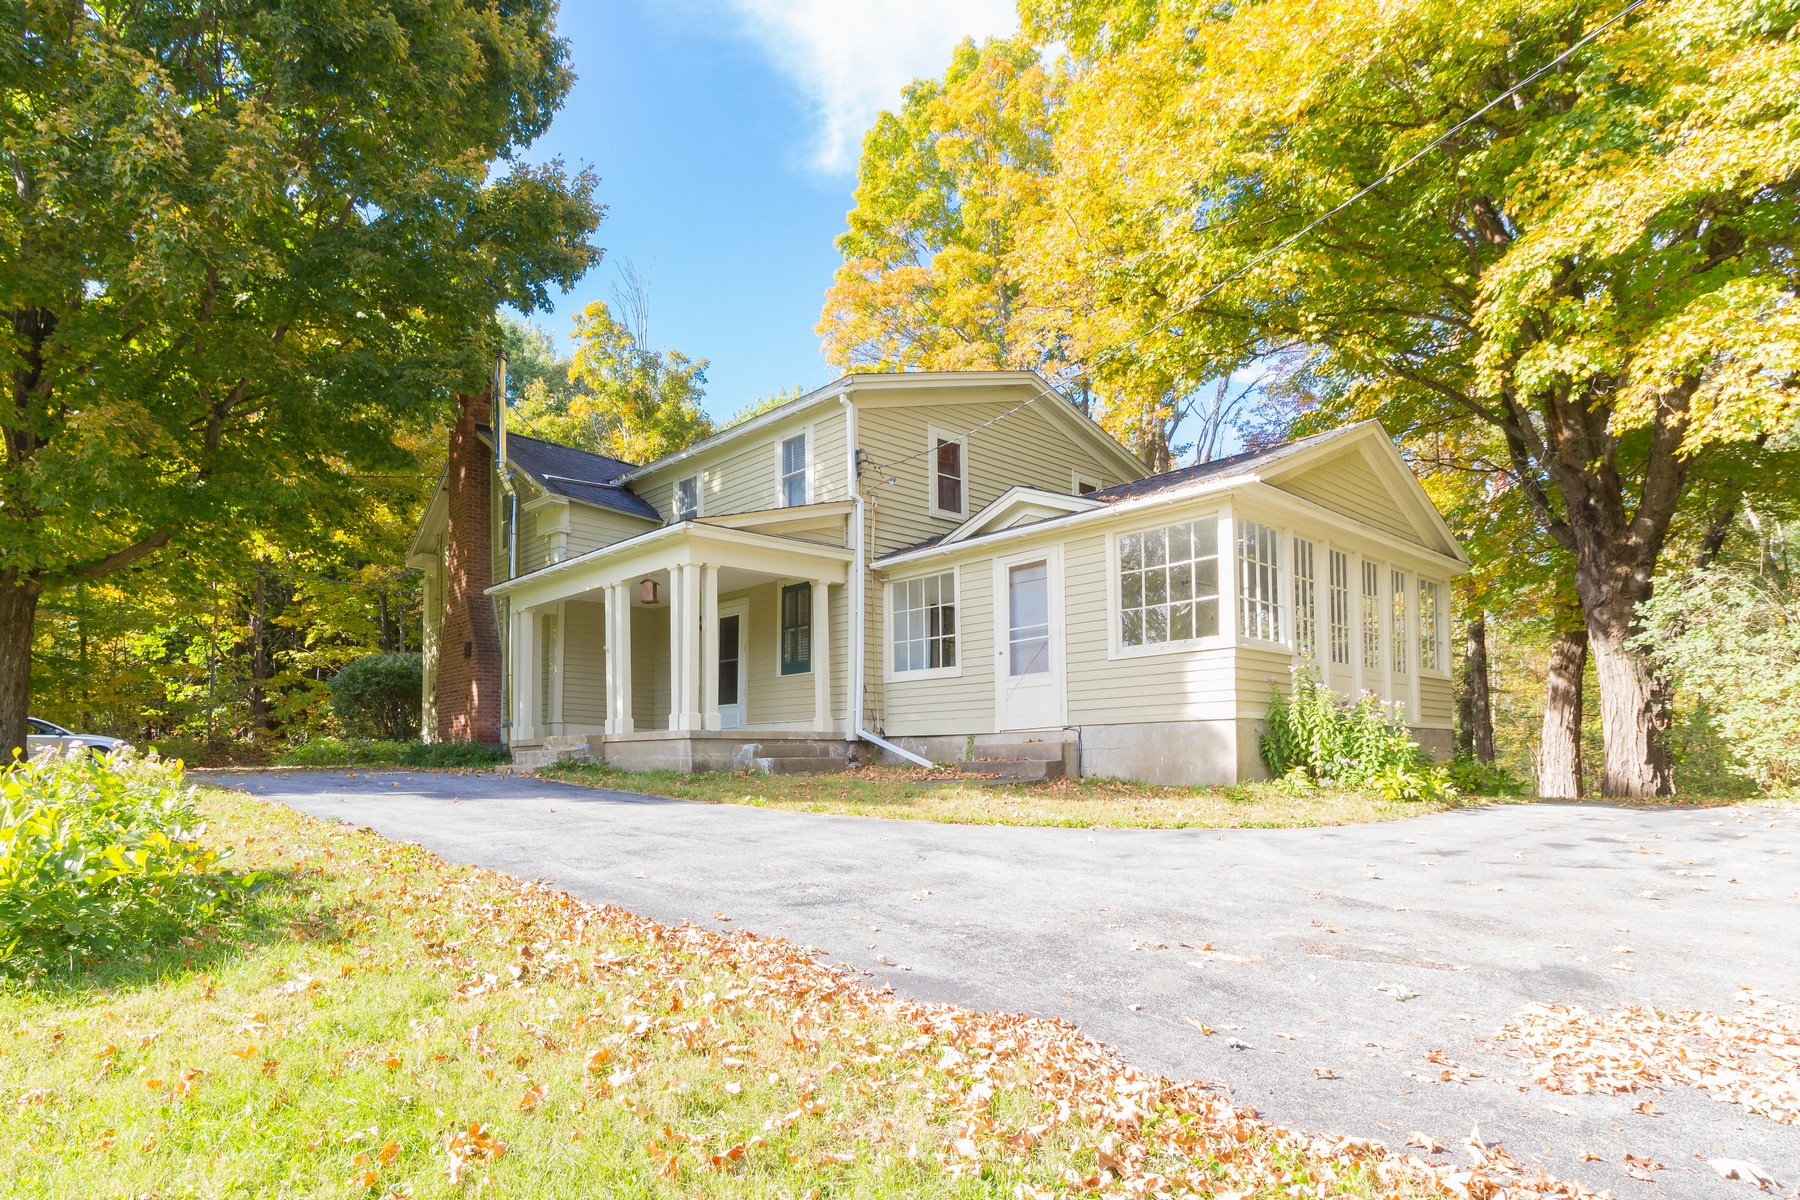 Additional photo for property listing at Quaint and Refined Rustic Colonial Home 172  Paisley Rd Ballston Spa, New York 12020 États-Unis